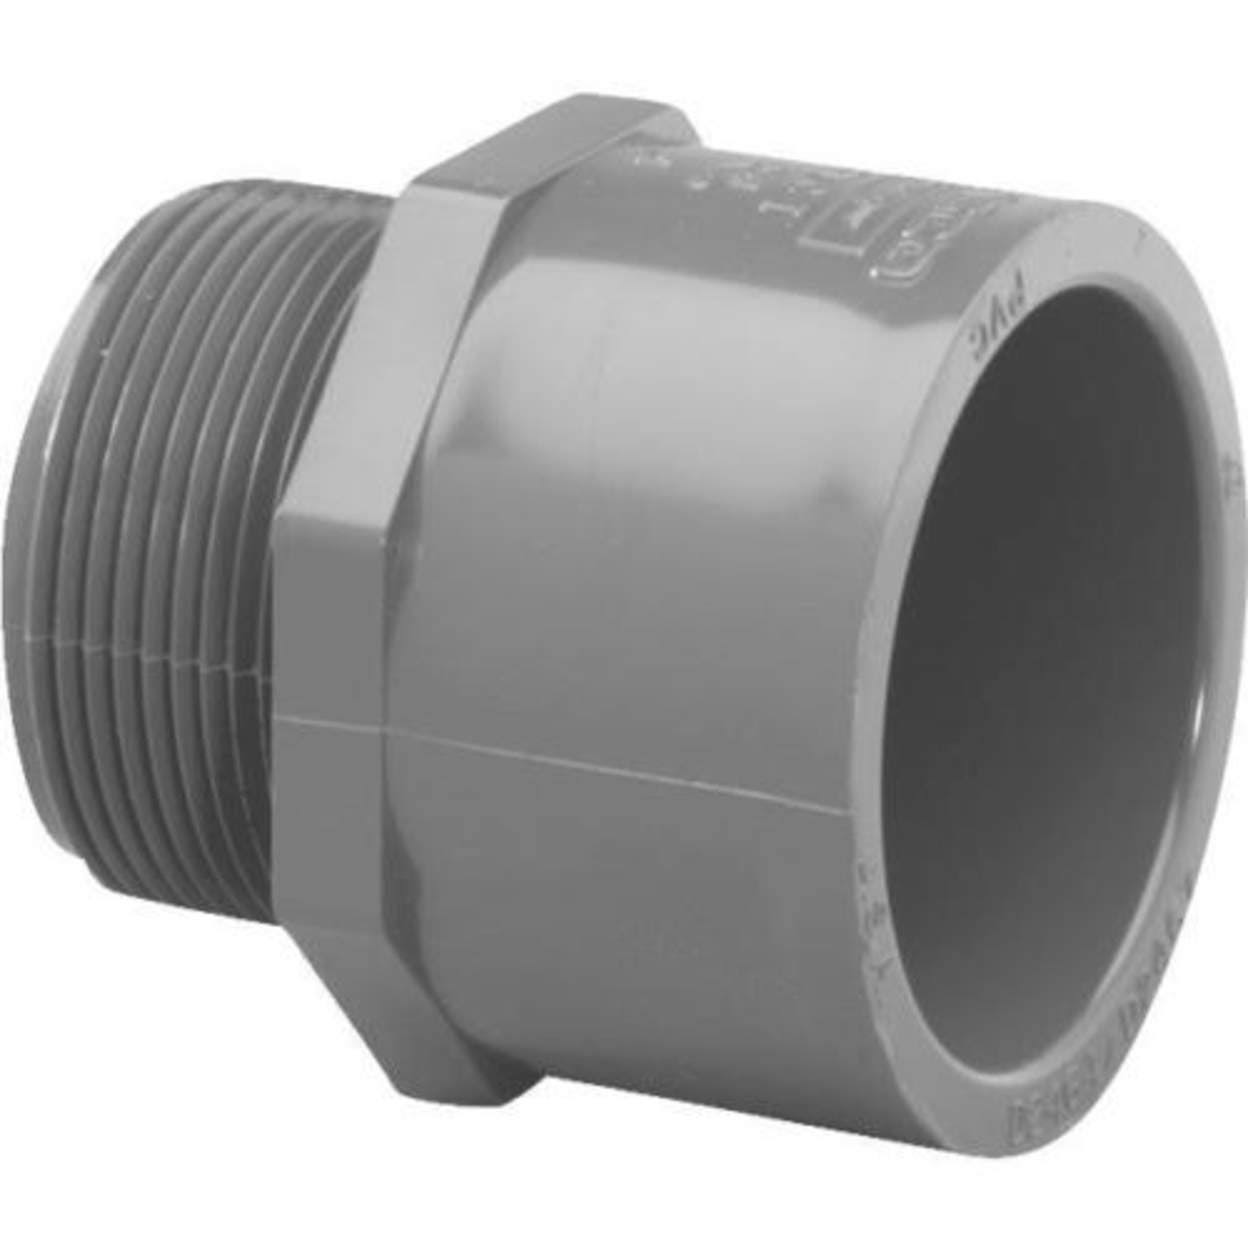 Genova 304158 PVC Male Adapter - Schedule 80, 1-1/2""